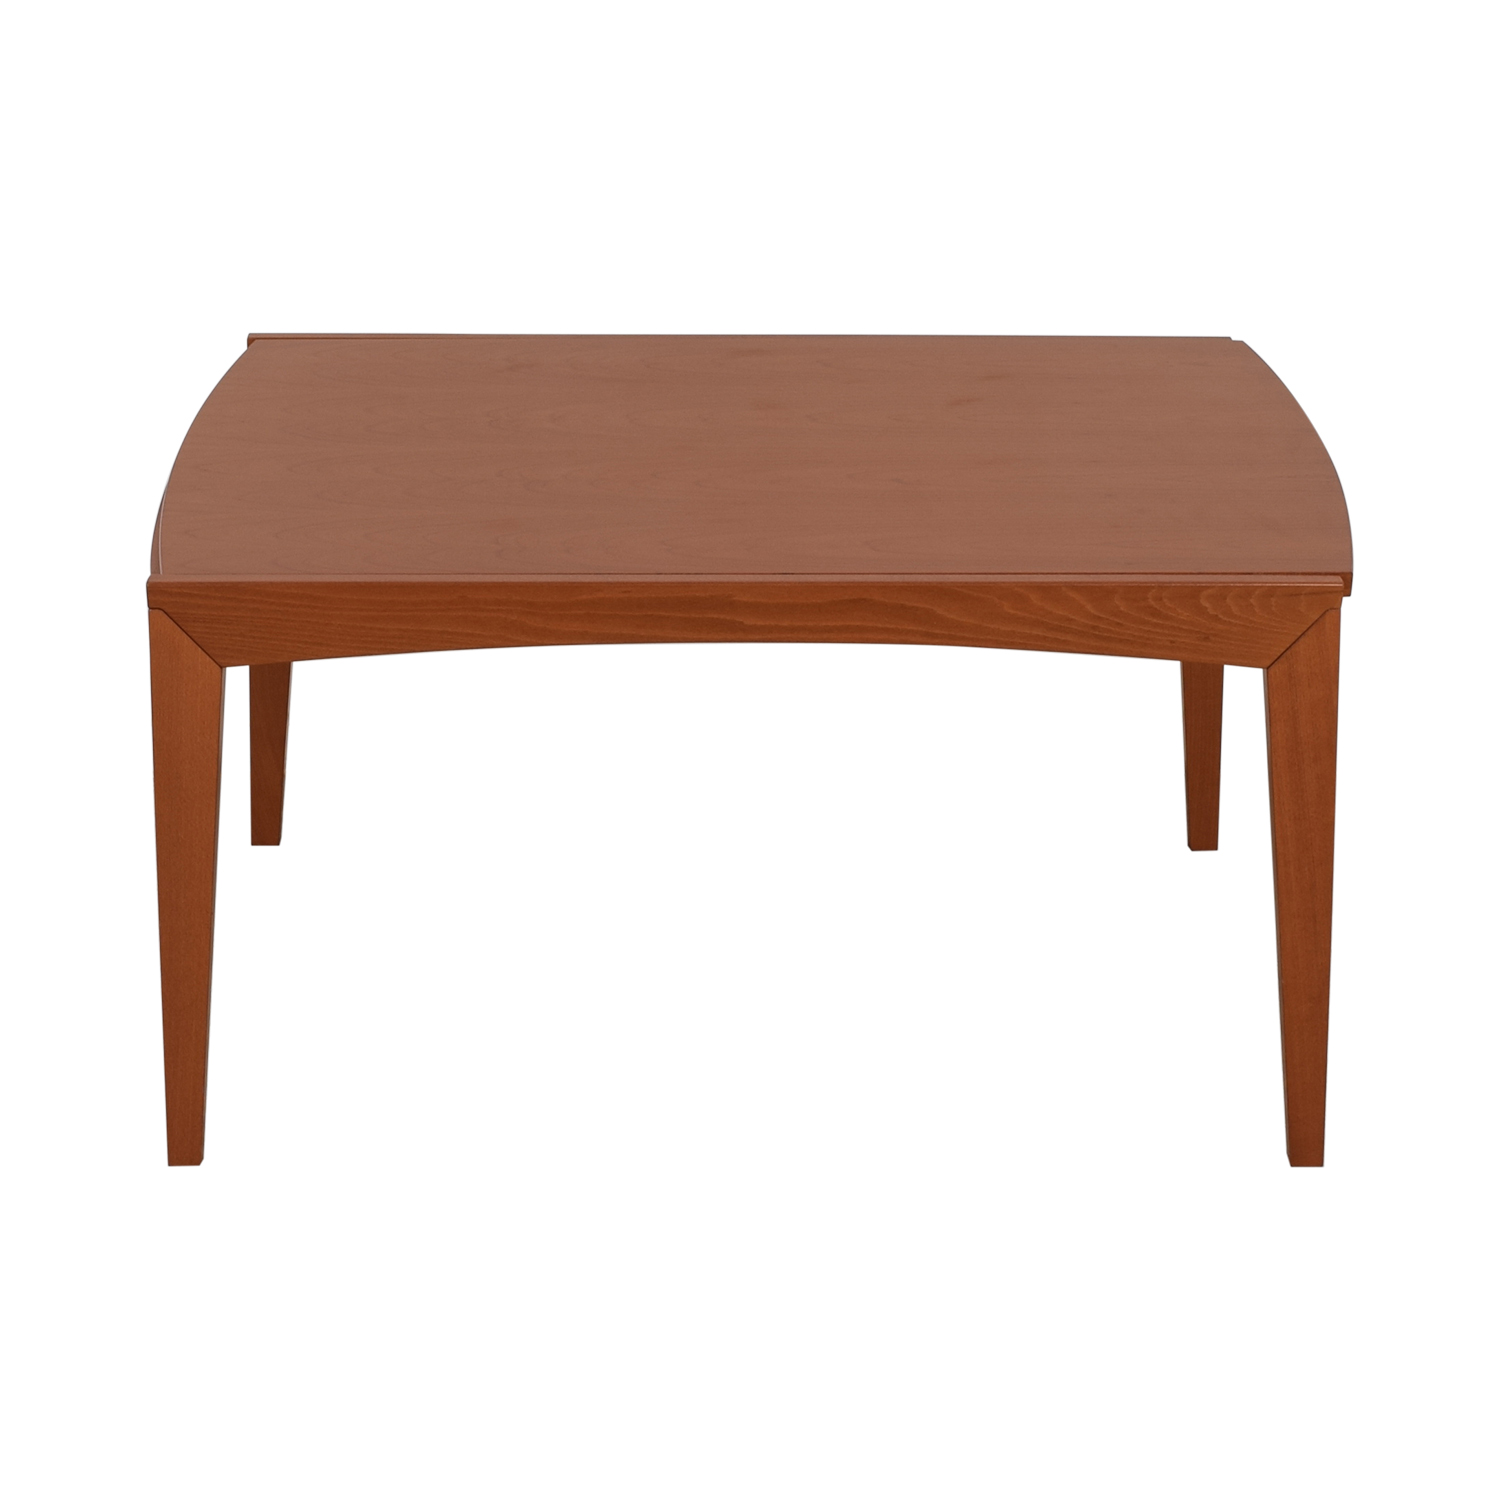 Calligaris Calligaris Refectory Dining Table Dinner Tables